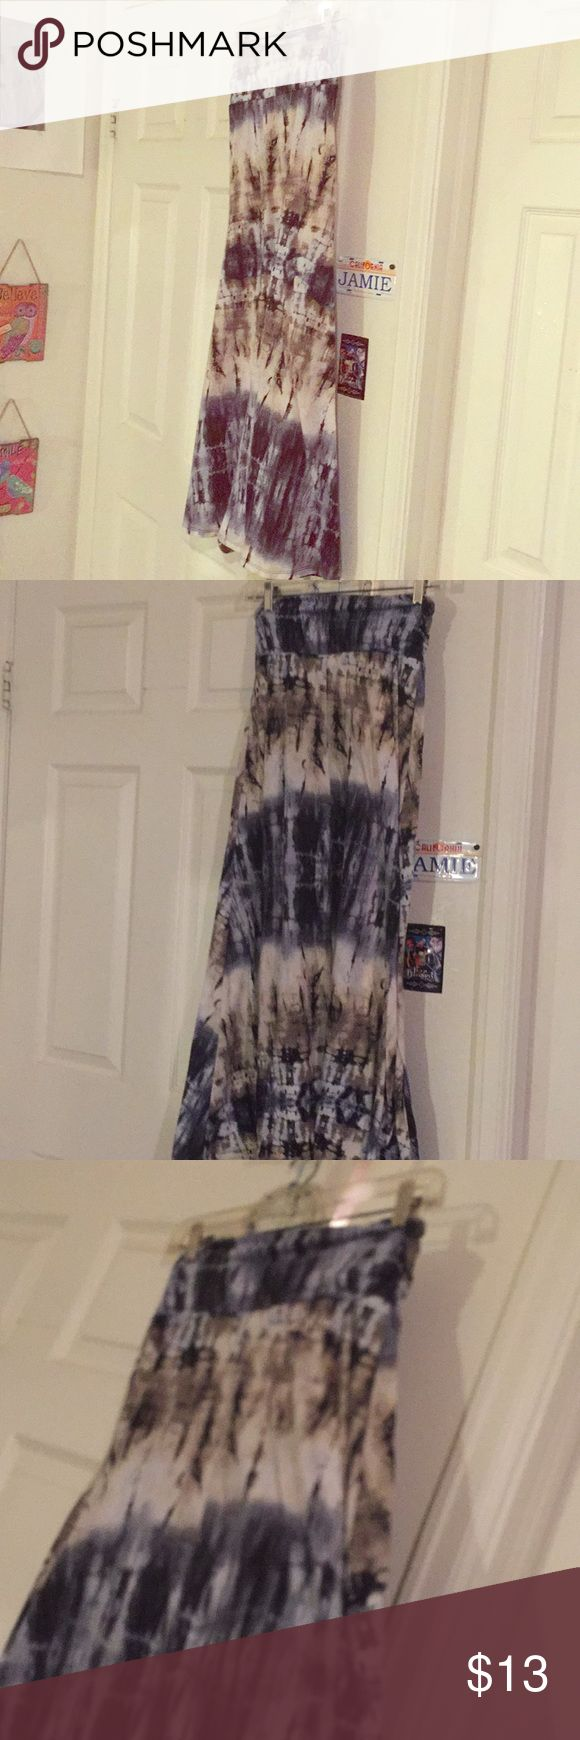 Tie dye dress! Only worn a handful of times! Can be worn as a long skirt or a cute tube top dress! Lots of compliments when wearing! Size large still very nice! Joe B Dresses